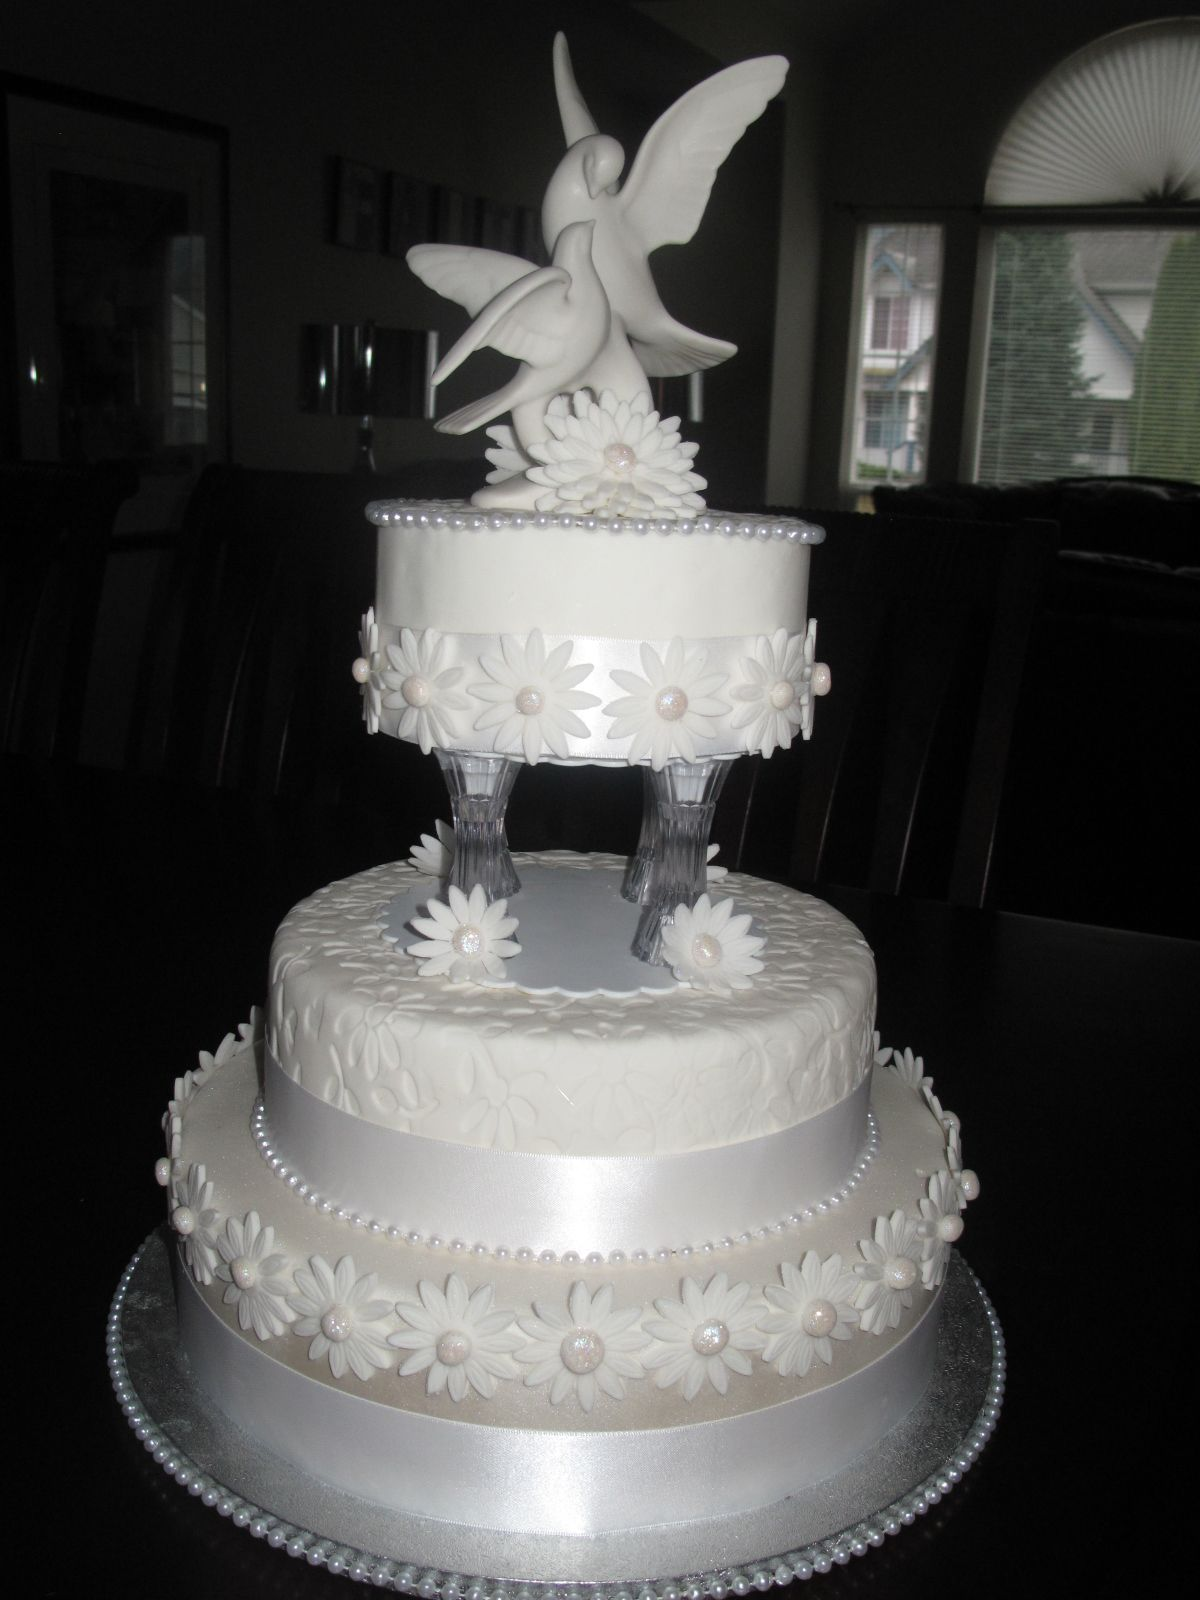 This is a three tiered wedding cake that has been adorned with white